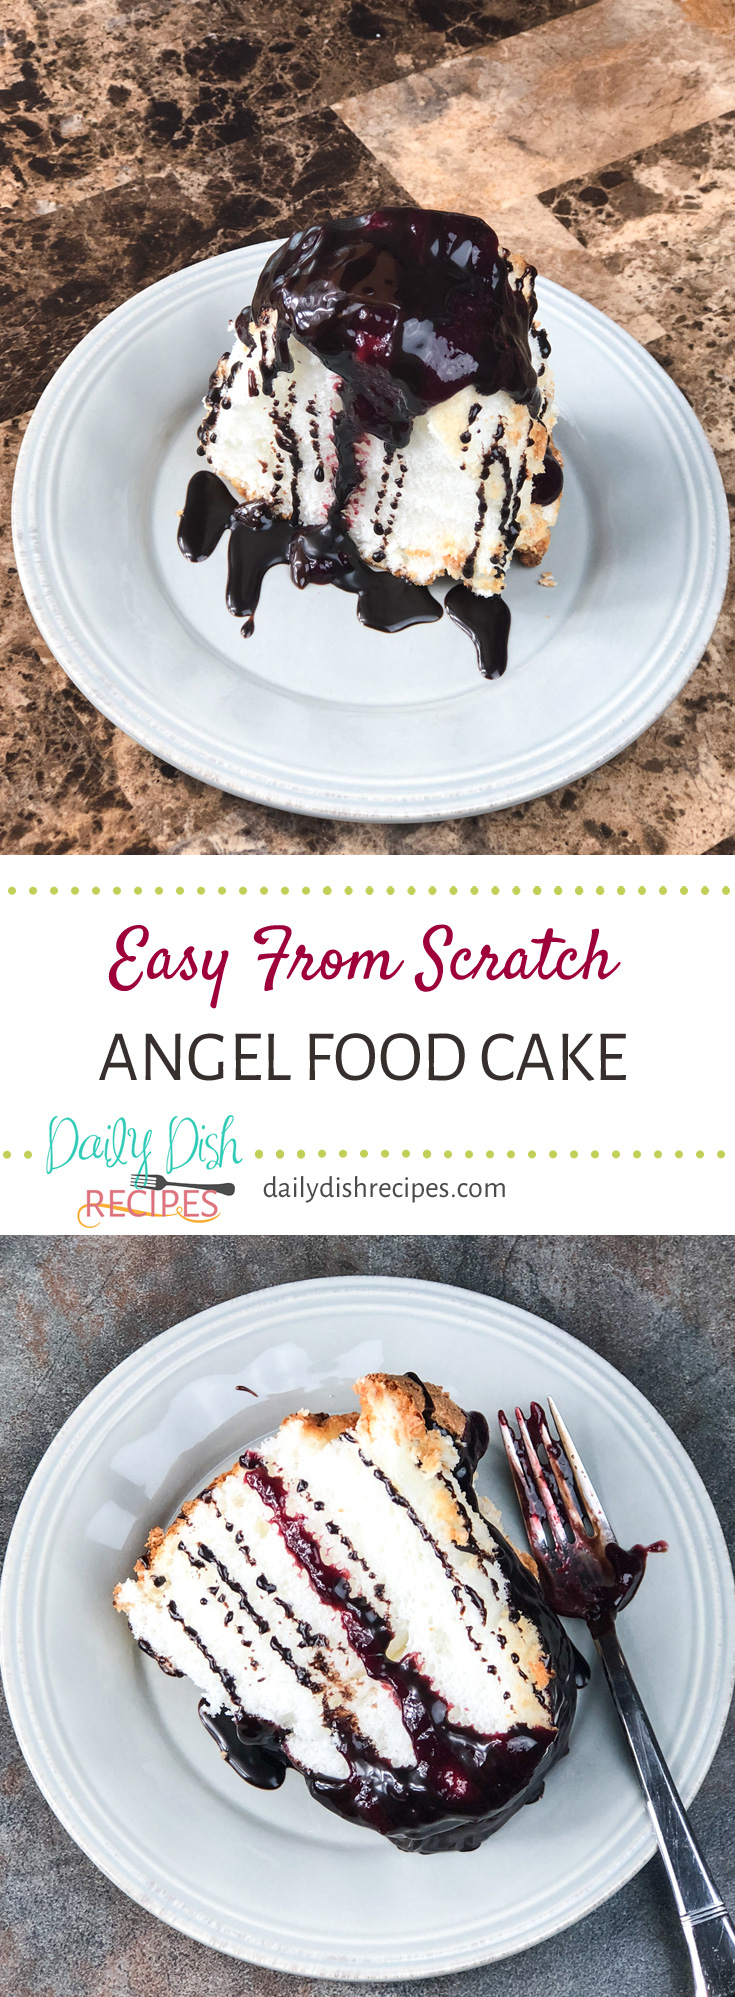 Easy From Scratch Angel Food Cake baked right in a bundt pan (in case you don't have a tube pan). Incredibly fluffy, airy and delicious Just the way classic Angel Food Cake should be!